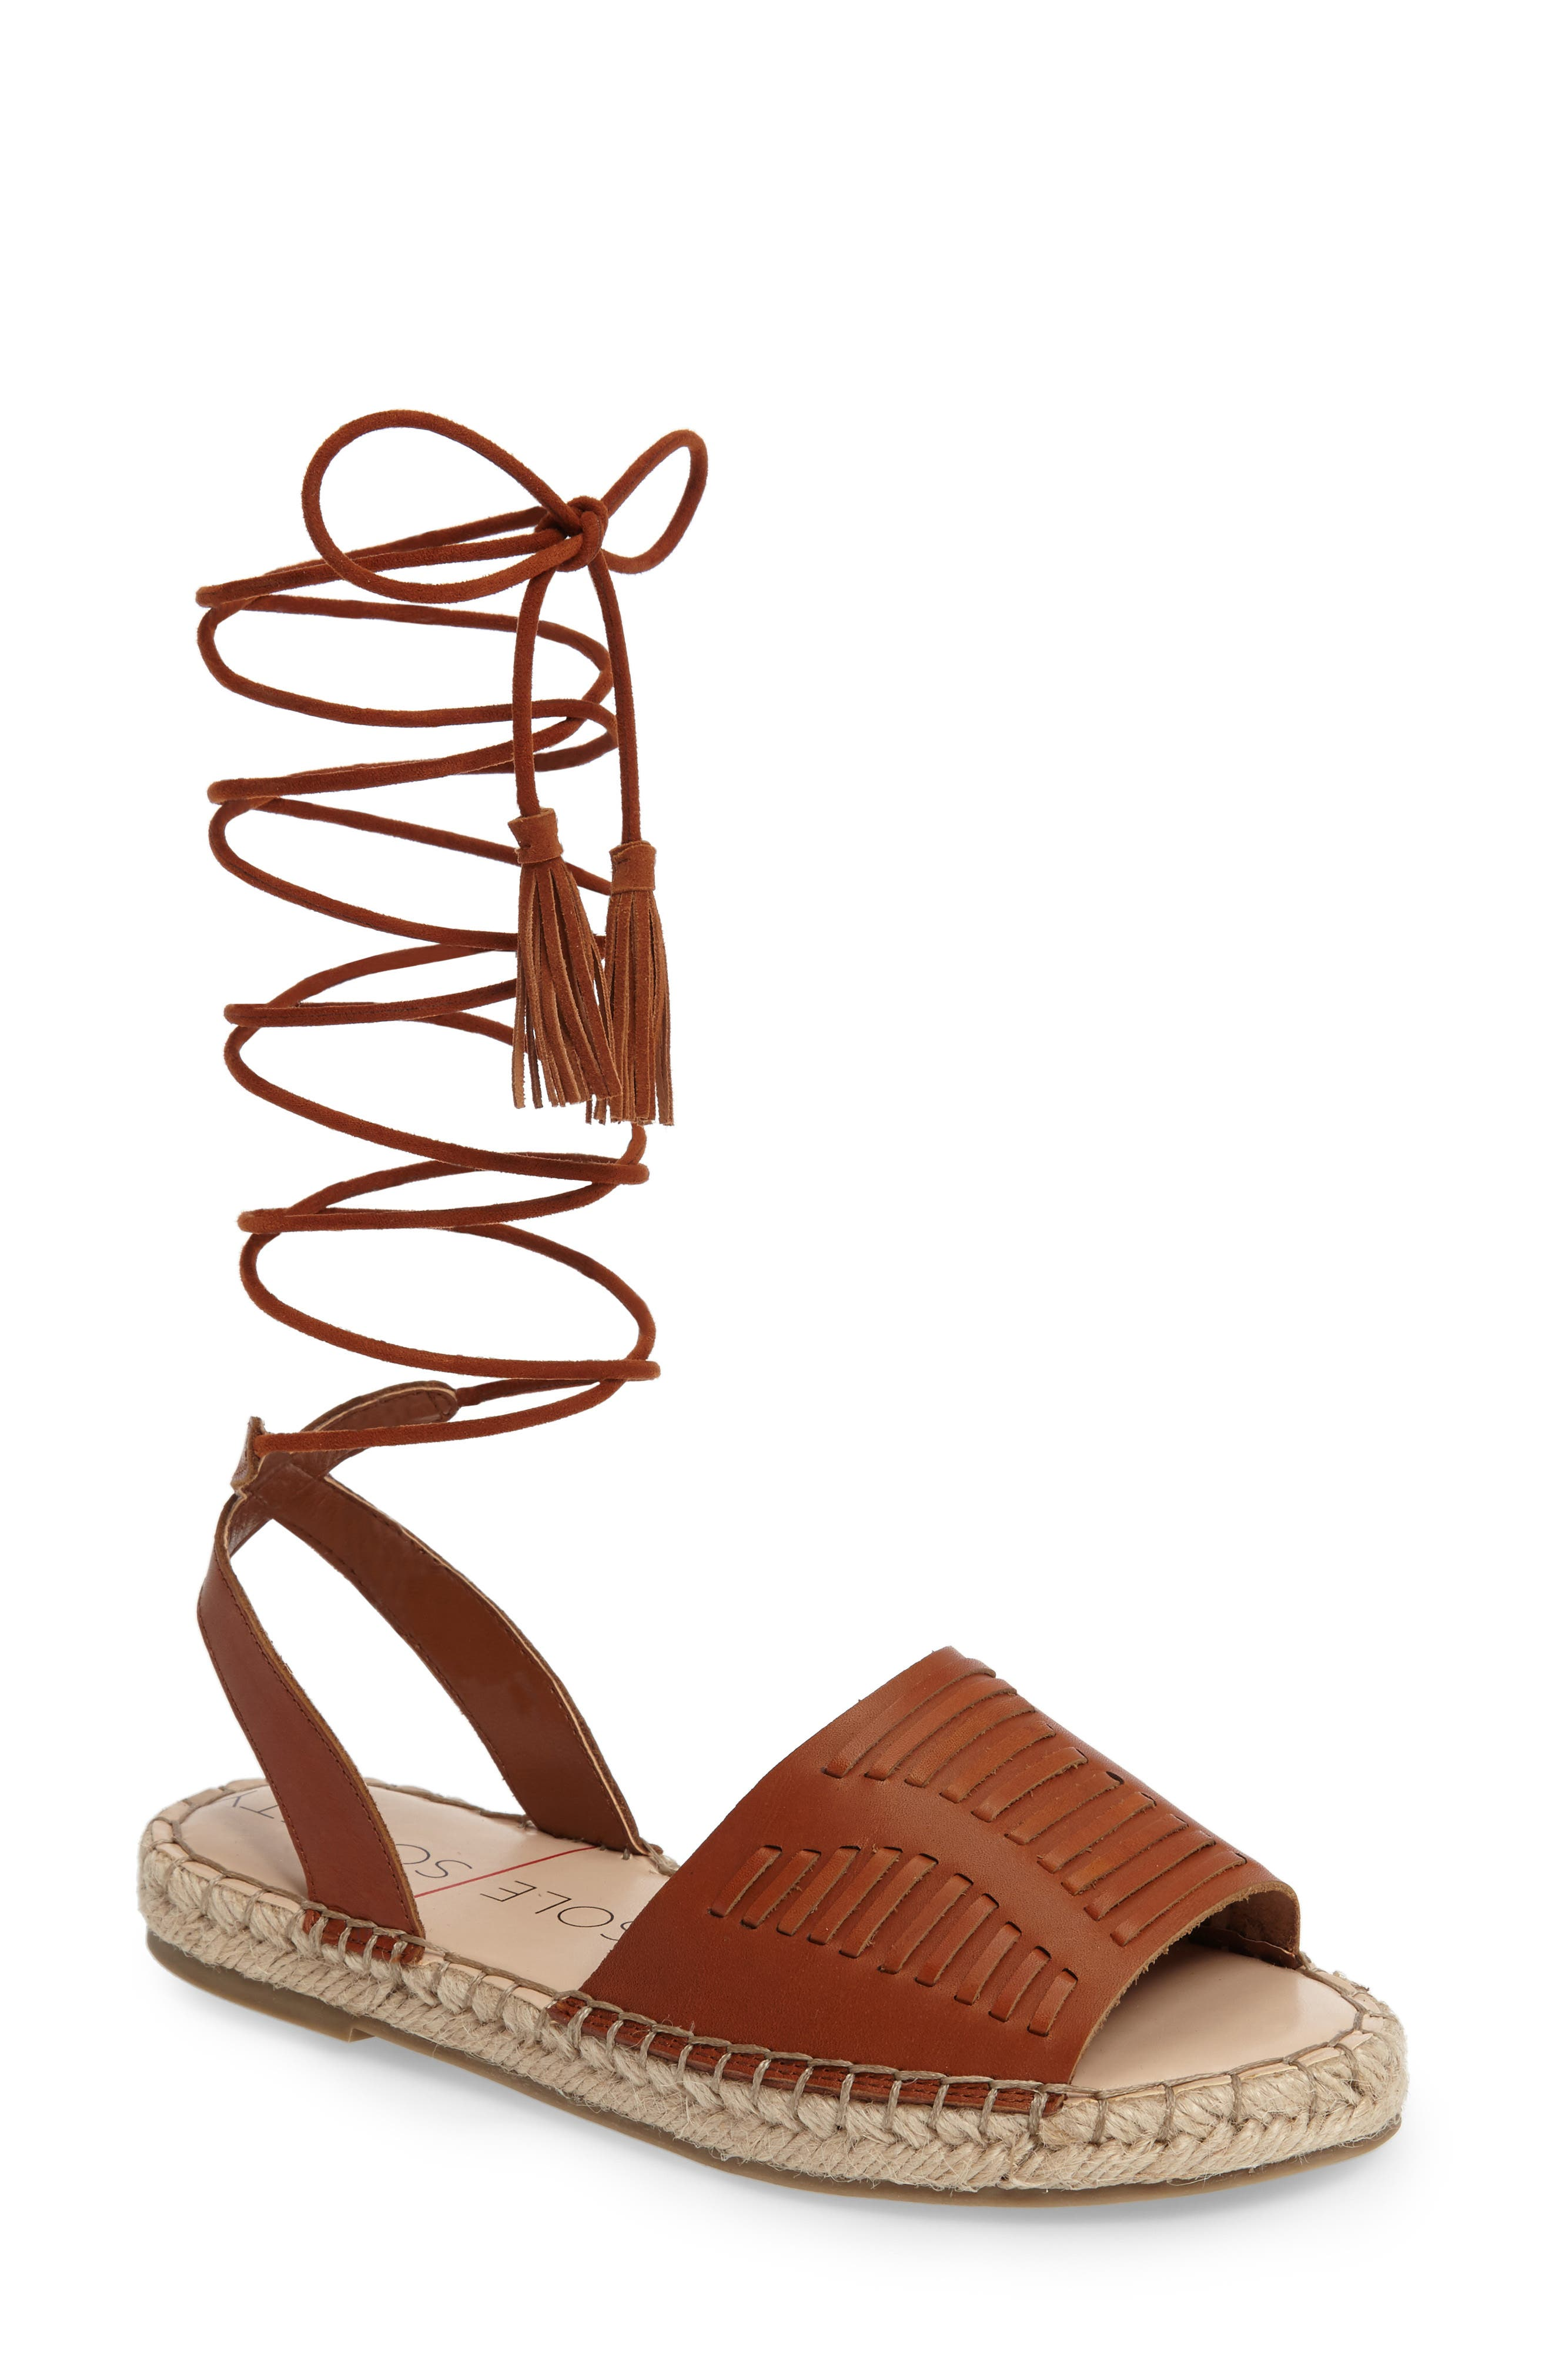 Alternate Image 1 Selected - Sole Society Clover Ankle Wrap Espadrille Sandal (Women)